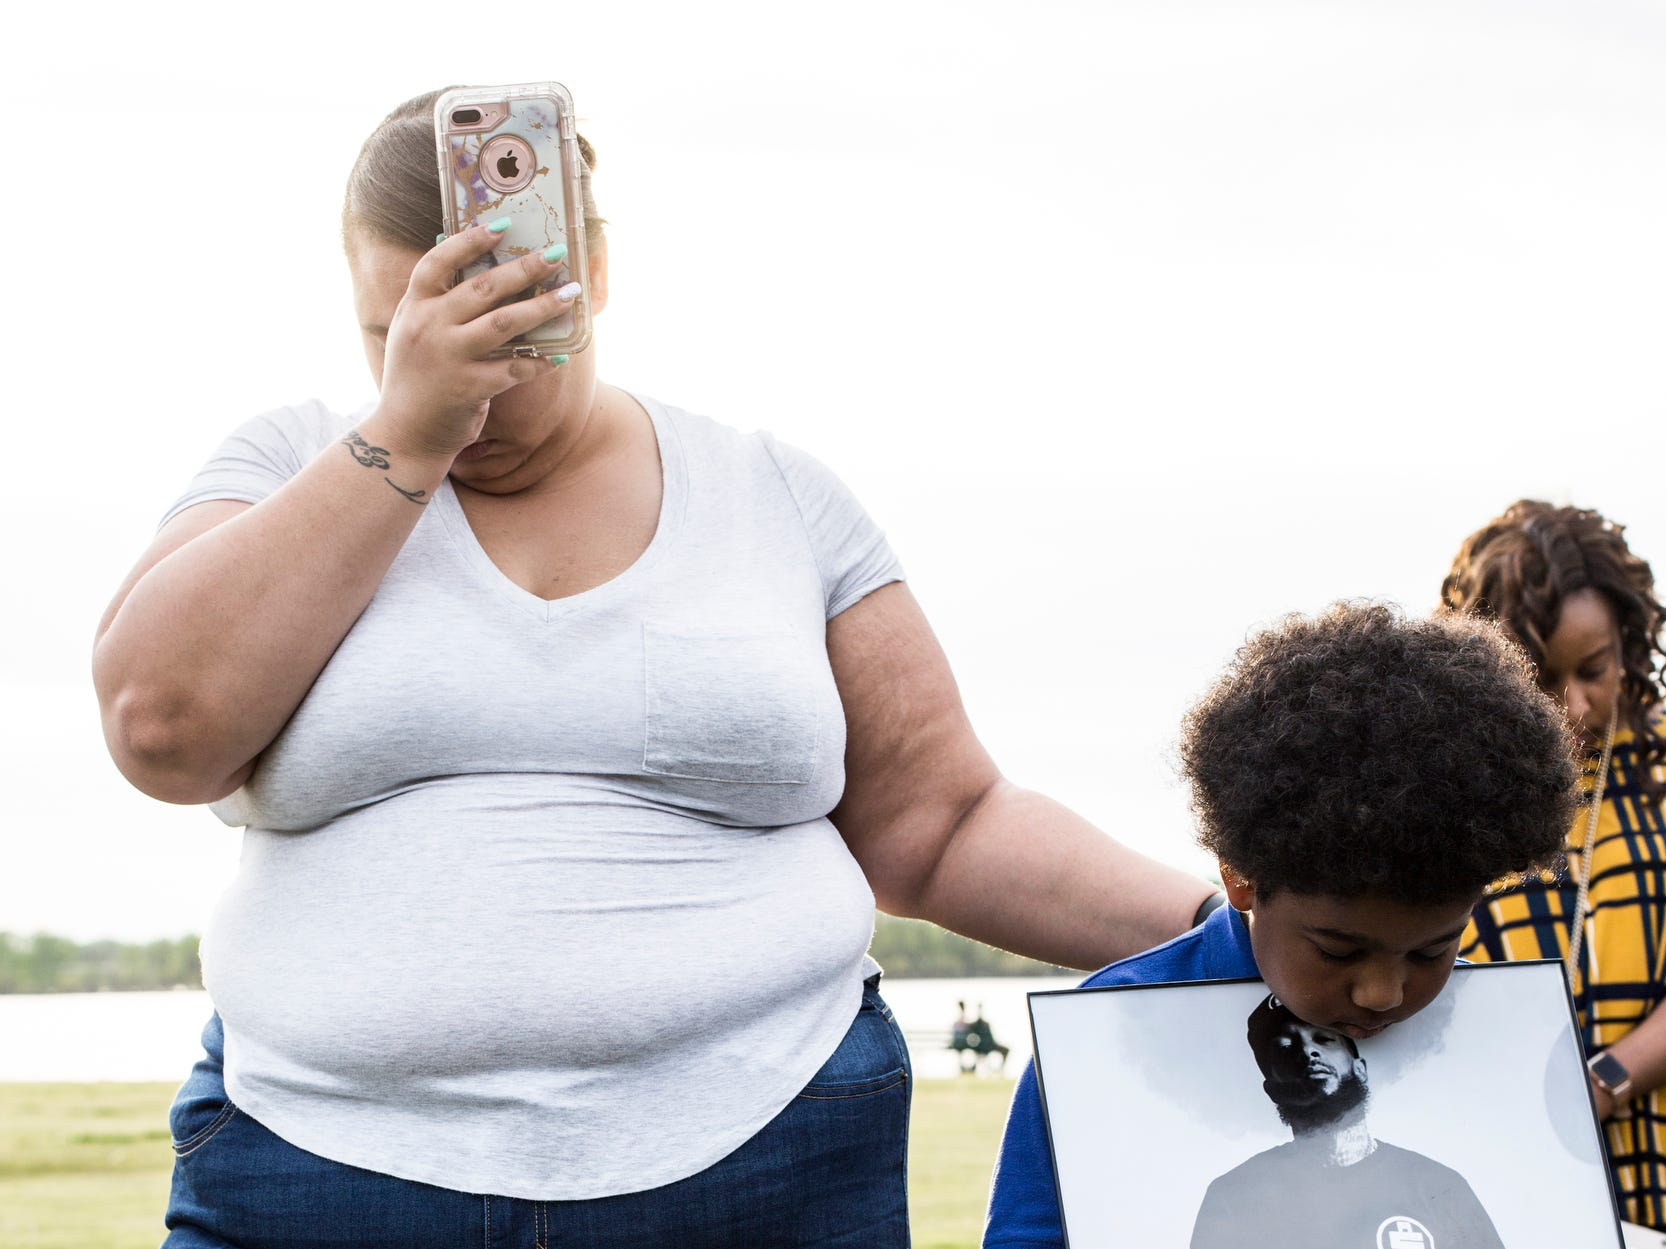 April 10, 2019 - Latisha Brownlee, left, and her nephew Christian Hodges, 7, pray during a vigil in honor of Nipsey Hussle at Tom Lee Park on Wednesday evening. Nipsey Hussle, a Grammy-nominated rapper and businessman, was shot to death in front of his clothing store Los Angeles.